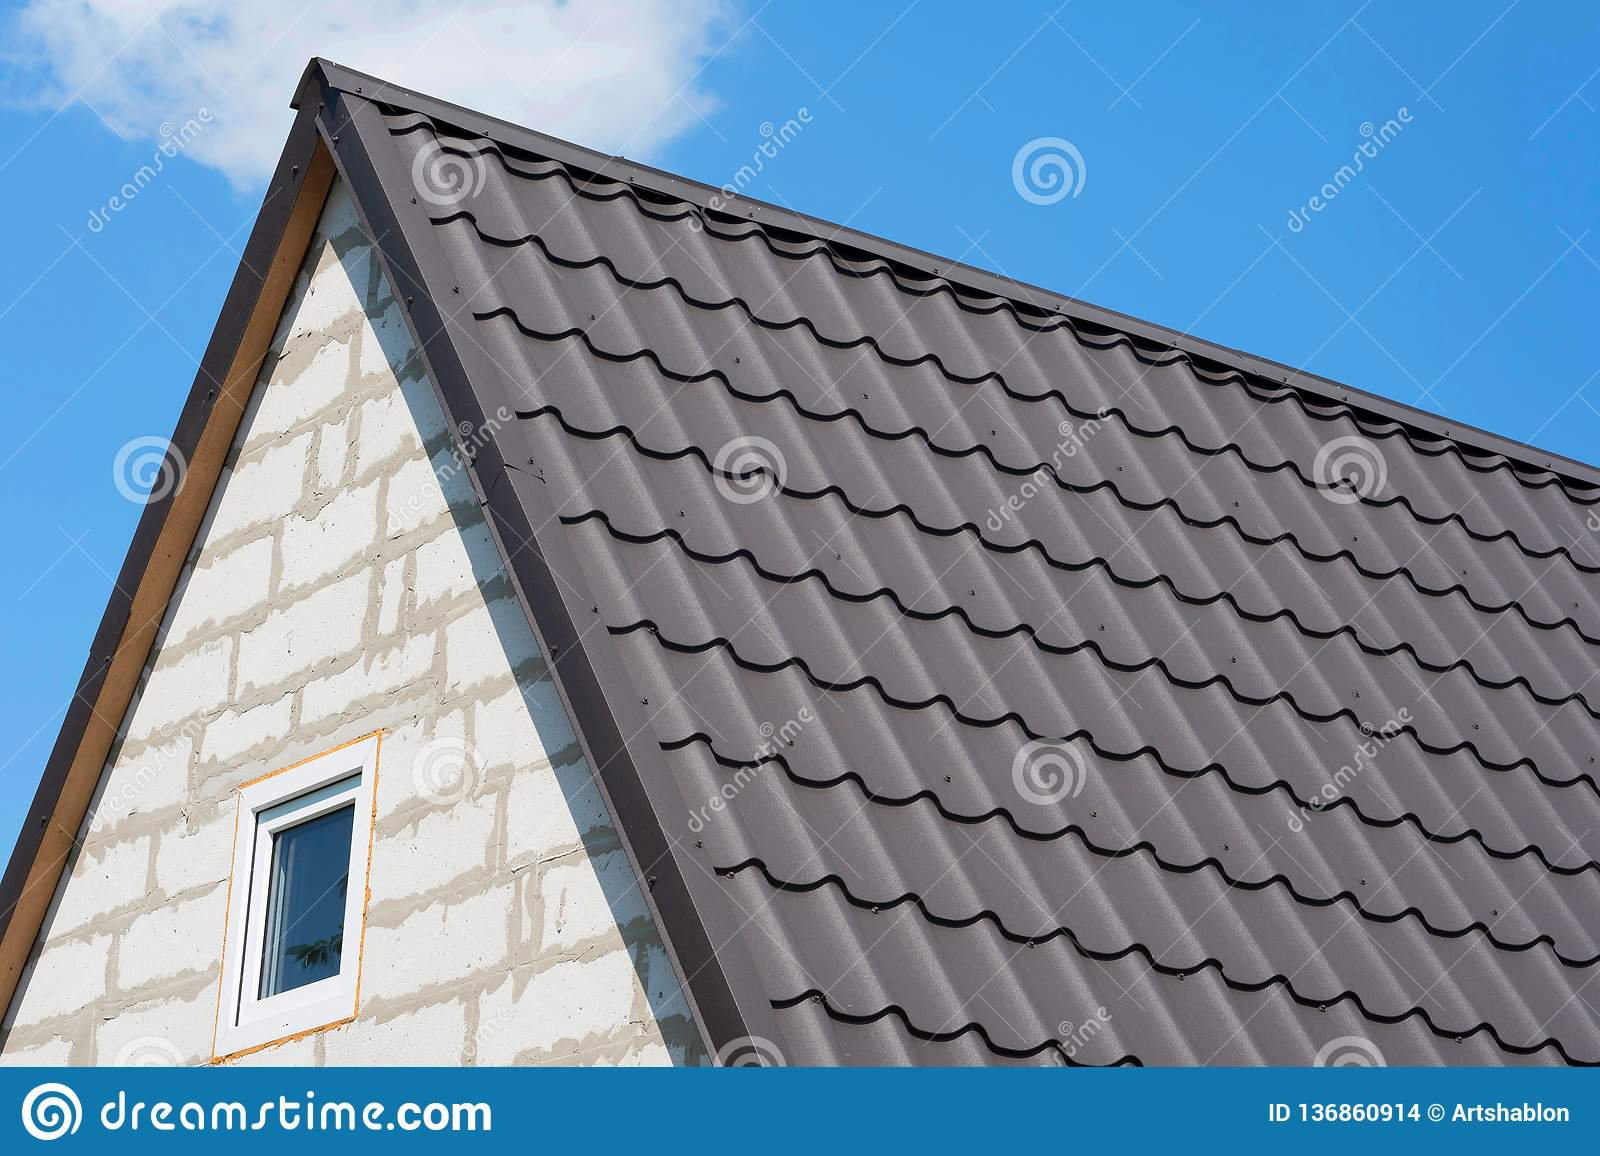 Roof of the house under brown shingles. Corner of the unfinished house close up, against the background of the blue sky